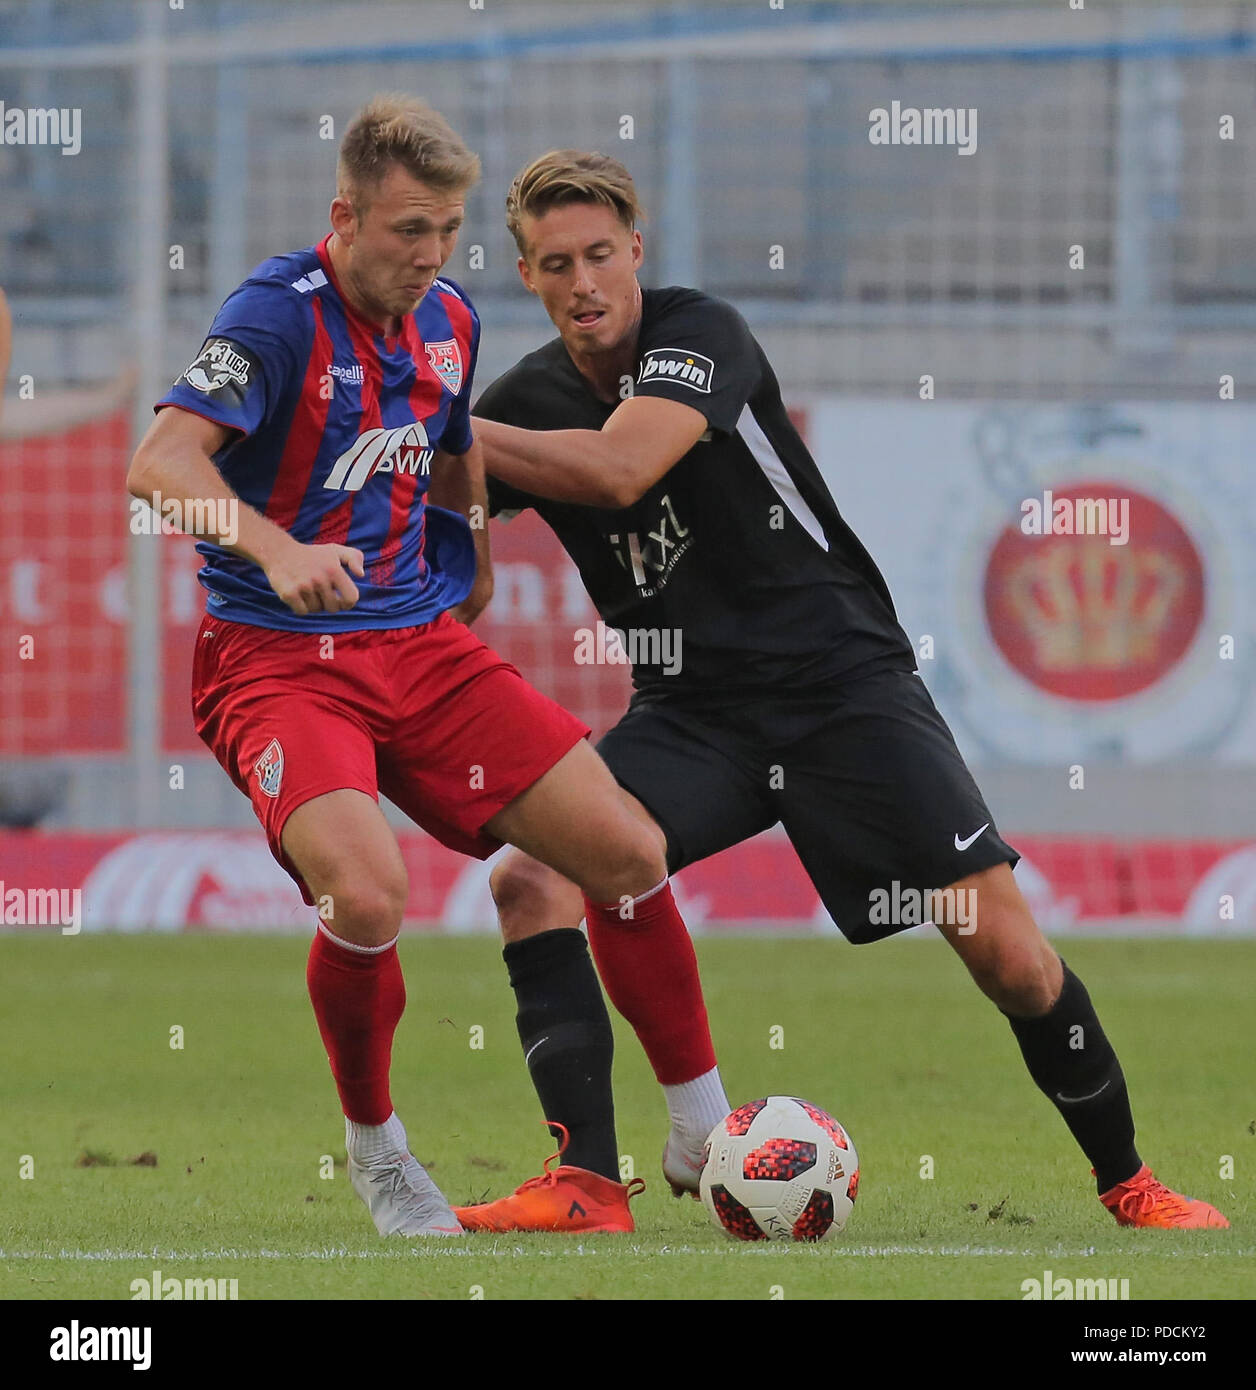 Duisburg, Germany. 08th Aug, 2018. Duisburg, Germany August 8 2018, 3rd league matchday 3, KFC Uerdingen 05 vs SV Meppen: Patrick Posipal (SVM), Connor Krempicki (KFC) in competition. Credit: Juergen Schwarz/Alamy Live News - Stock Image